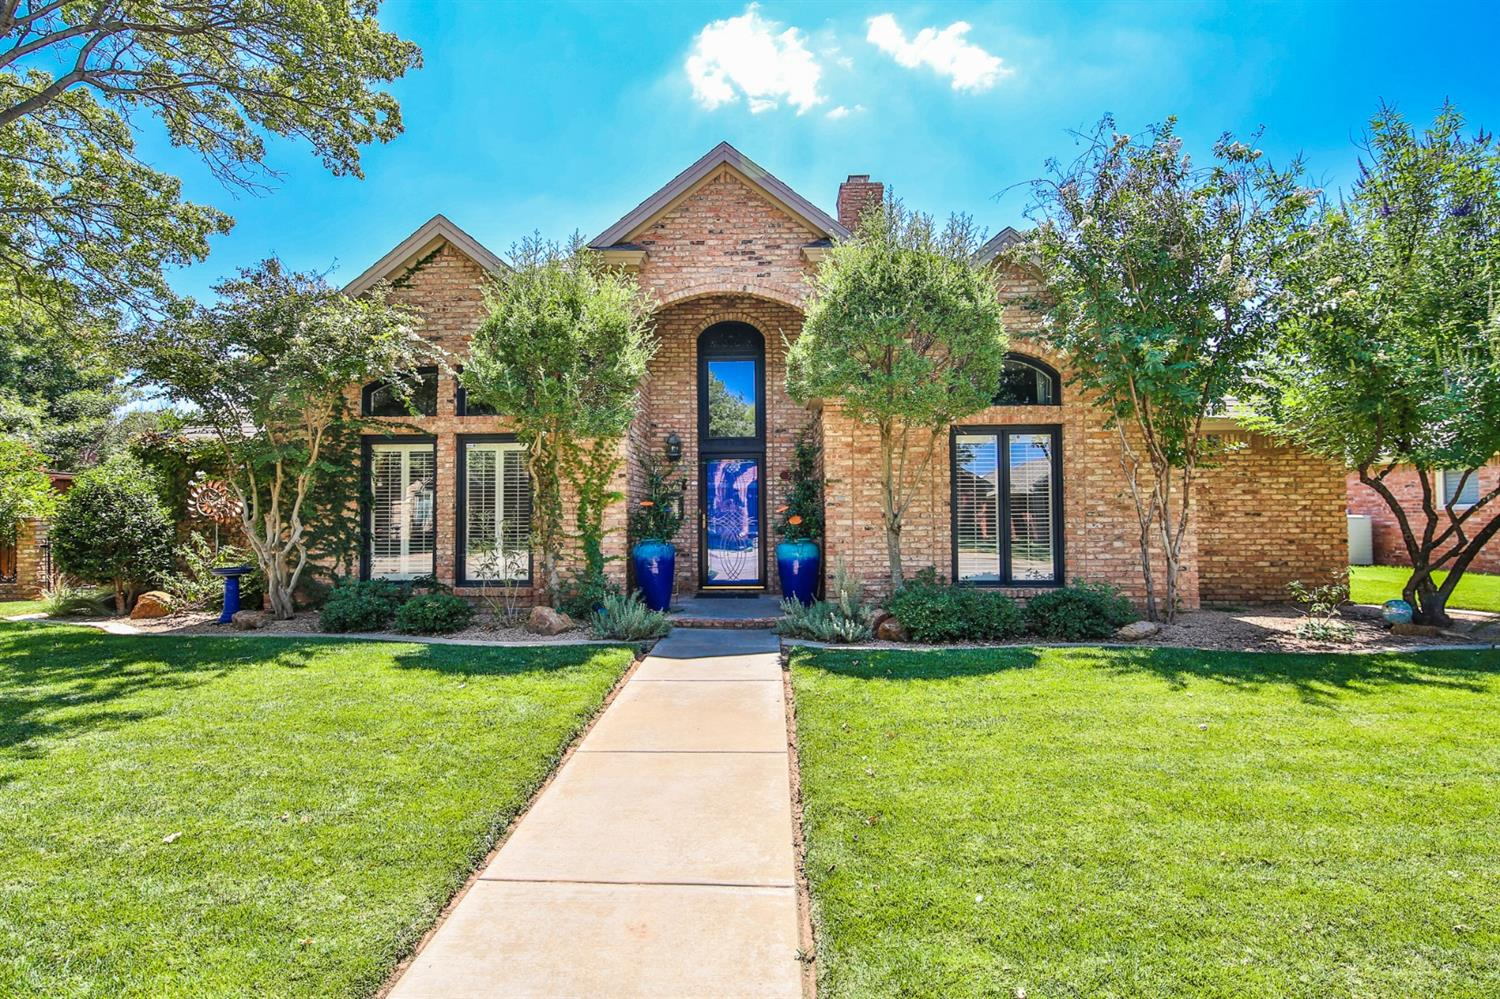 This one is all WOW factor! 3/2.5/2 in Frenship ISD, this home has ALL of the bells and whistles. A vogue-worthy entryway opens up to soaring ceilings in the open living and dining area. The kitchen is stunning with beautiful granite and stainless appliances. The island and range hood could double as artwork, and the bonus breakfast dining comes complete with a elegant courtyard view. The master suite feels like a European getaway! The master bedroom features soft grasscloth accent walls, recessed ceilings and natural light. The master bath features a spa tub and separate shower, ornate counters and light fixtures, and huge walk-in closet. The two spare bedrooms boast room to grow. The front bedroom dons vaulted ceilings and a one-of-a-kind treehouse-like loft! The bonus room/second living room at the back of the home steps out into a backyard oasis, featuring a privacy fence, volleyball-style pool and stunning pergola. This one is a showstopper!